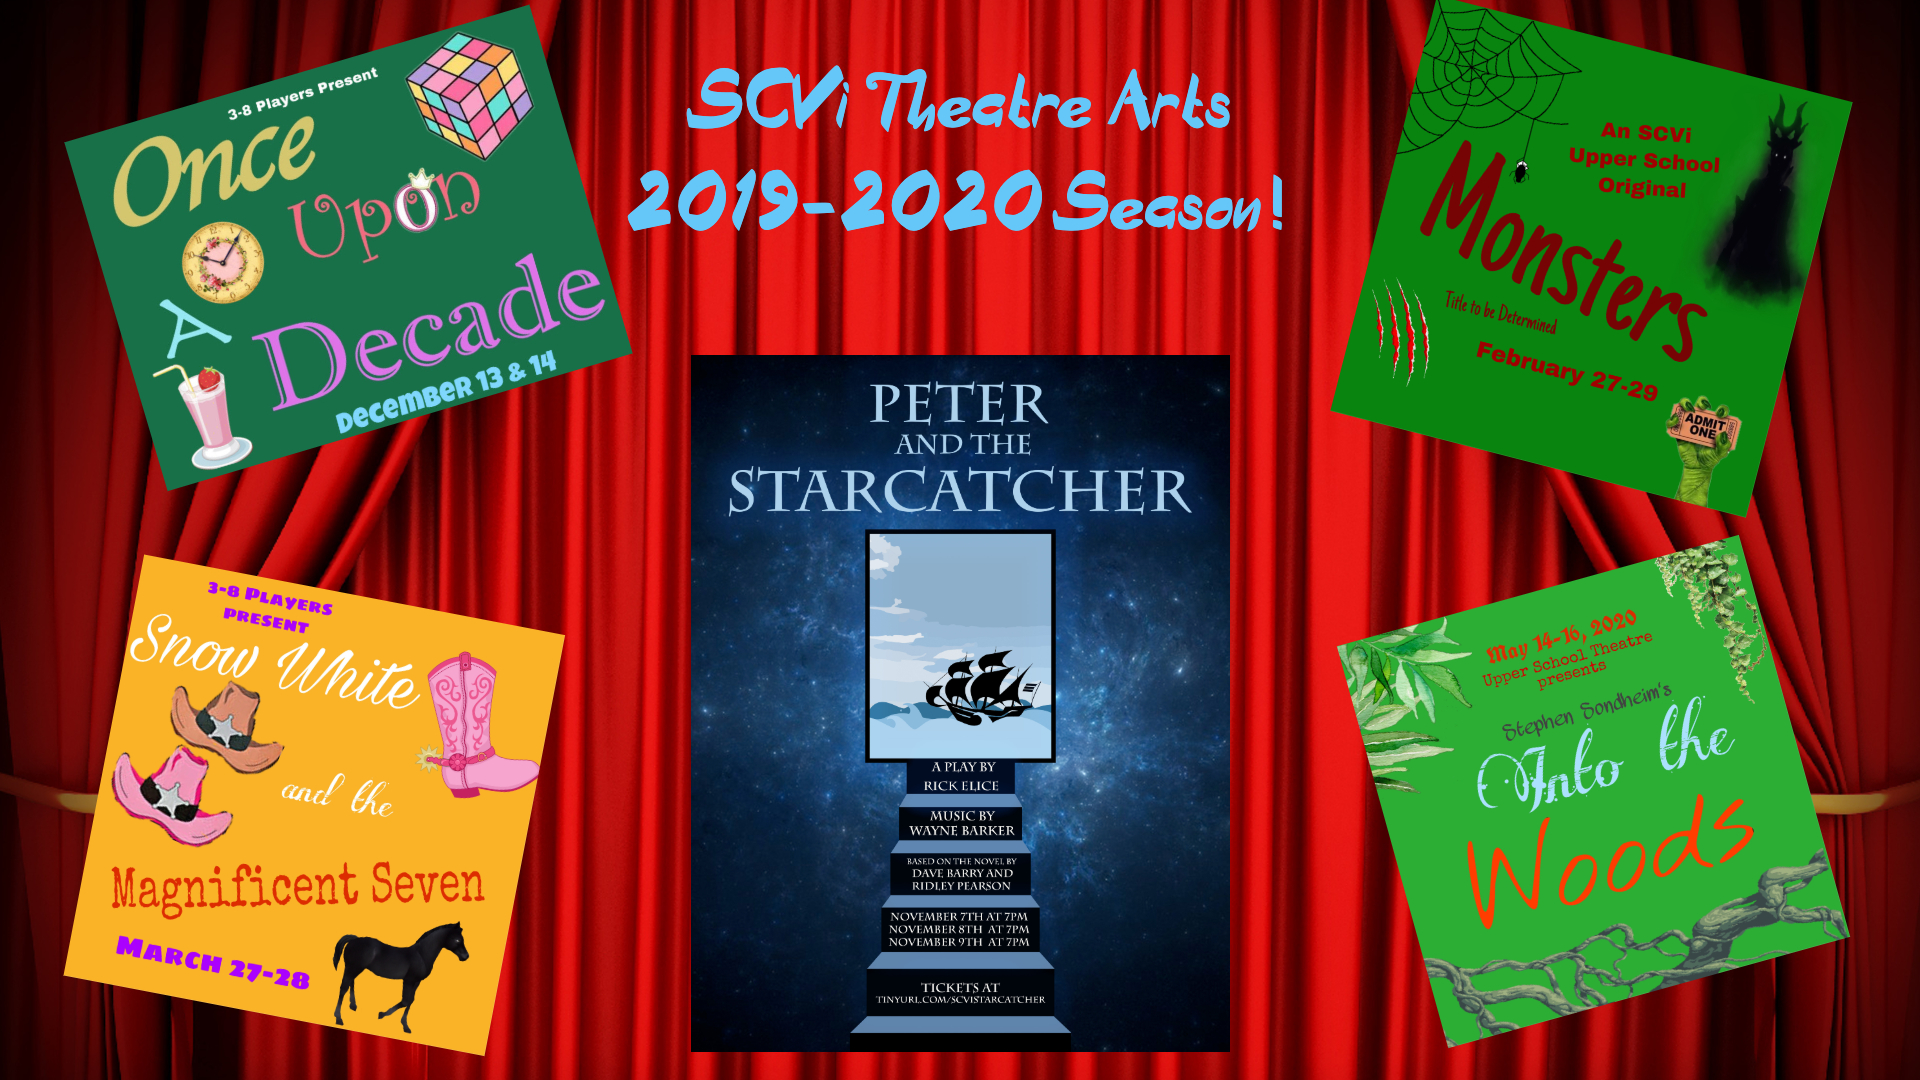 News from SCVi Theatre Arts